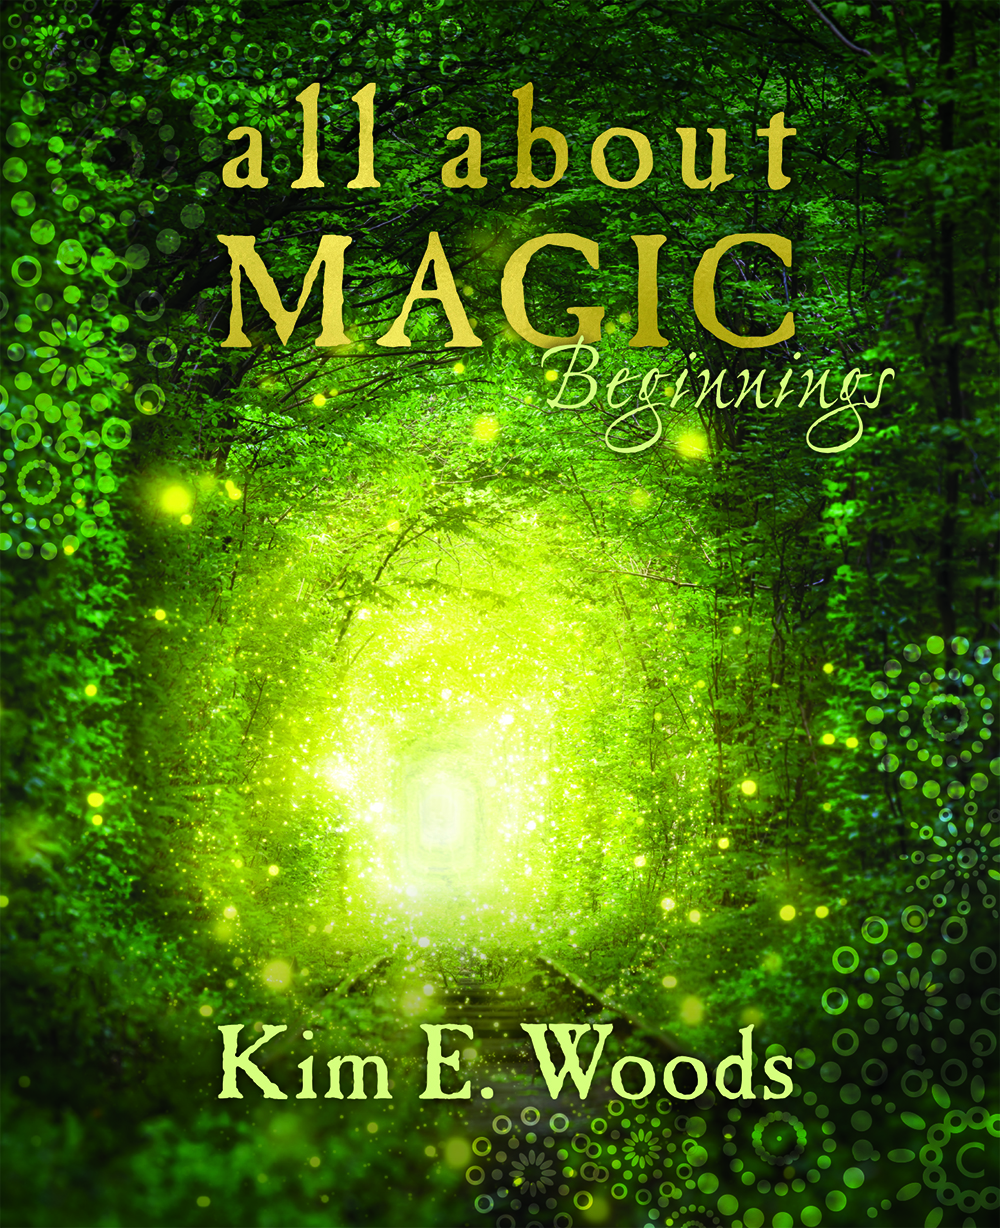 All About Magic Beginnings cover.jpg